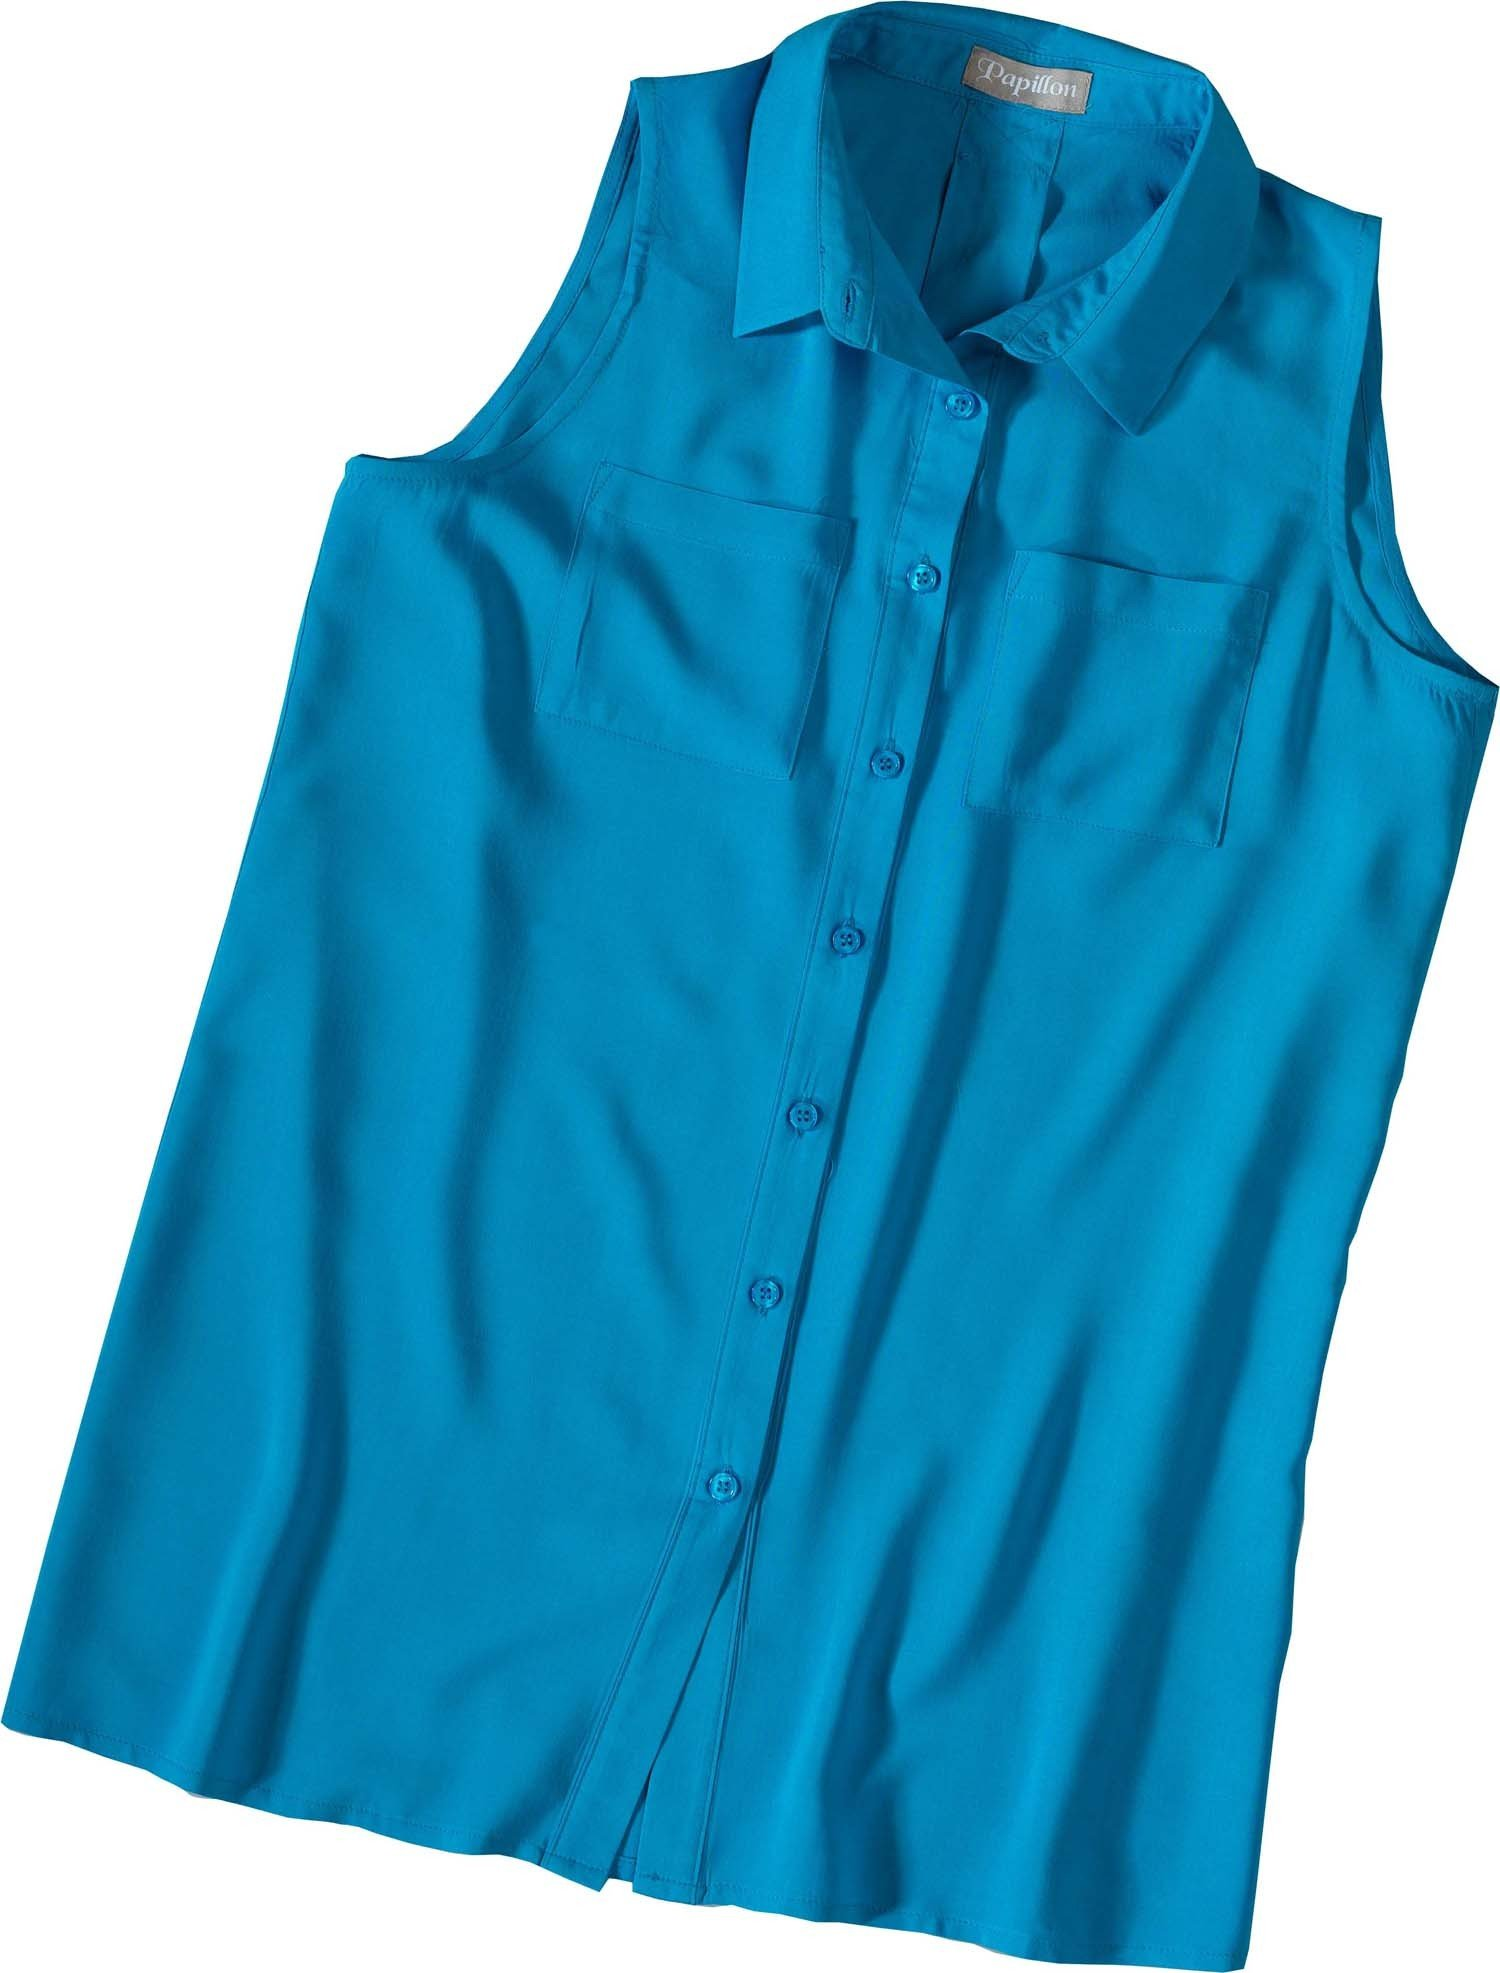 D-Gilet-Bluse weiss M 001 - 4 - Ronja.ch